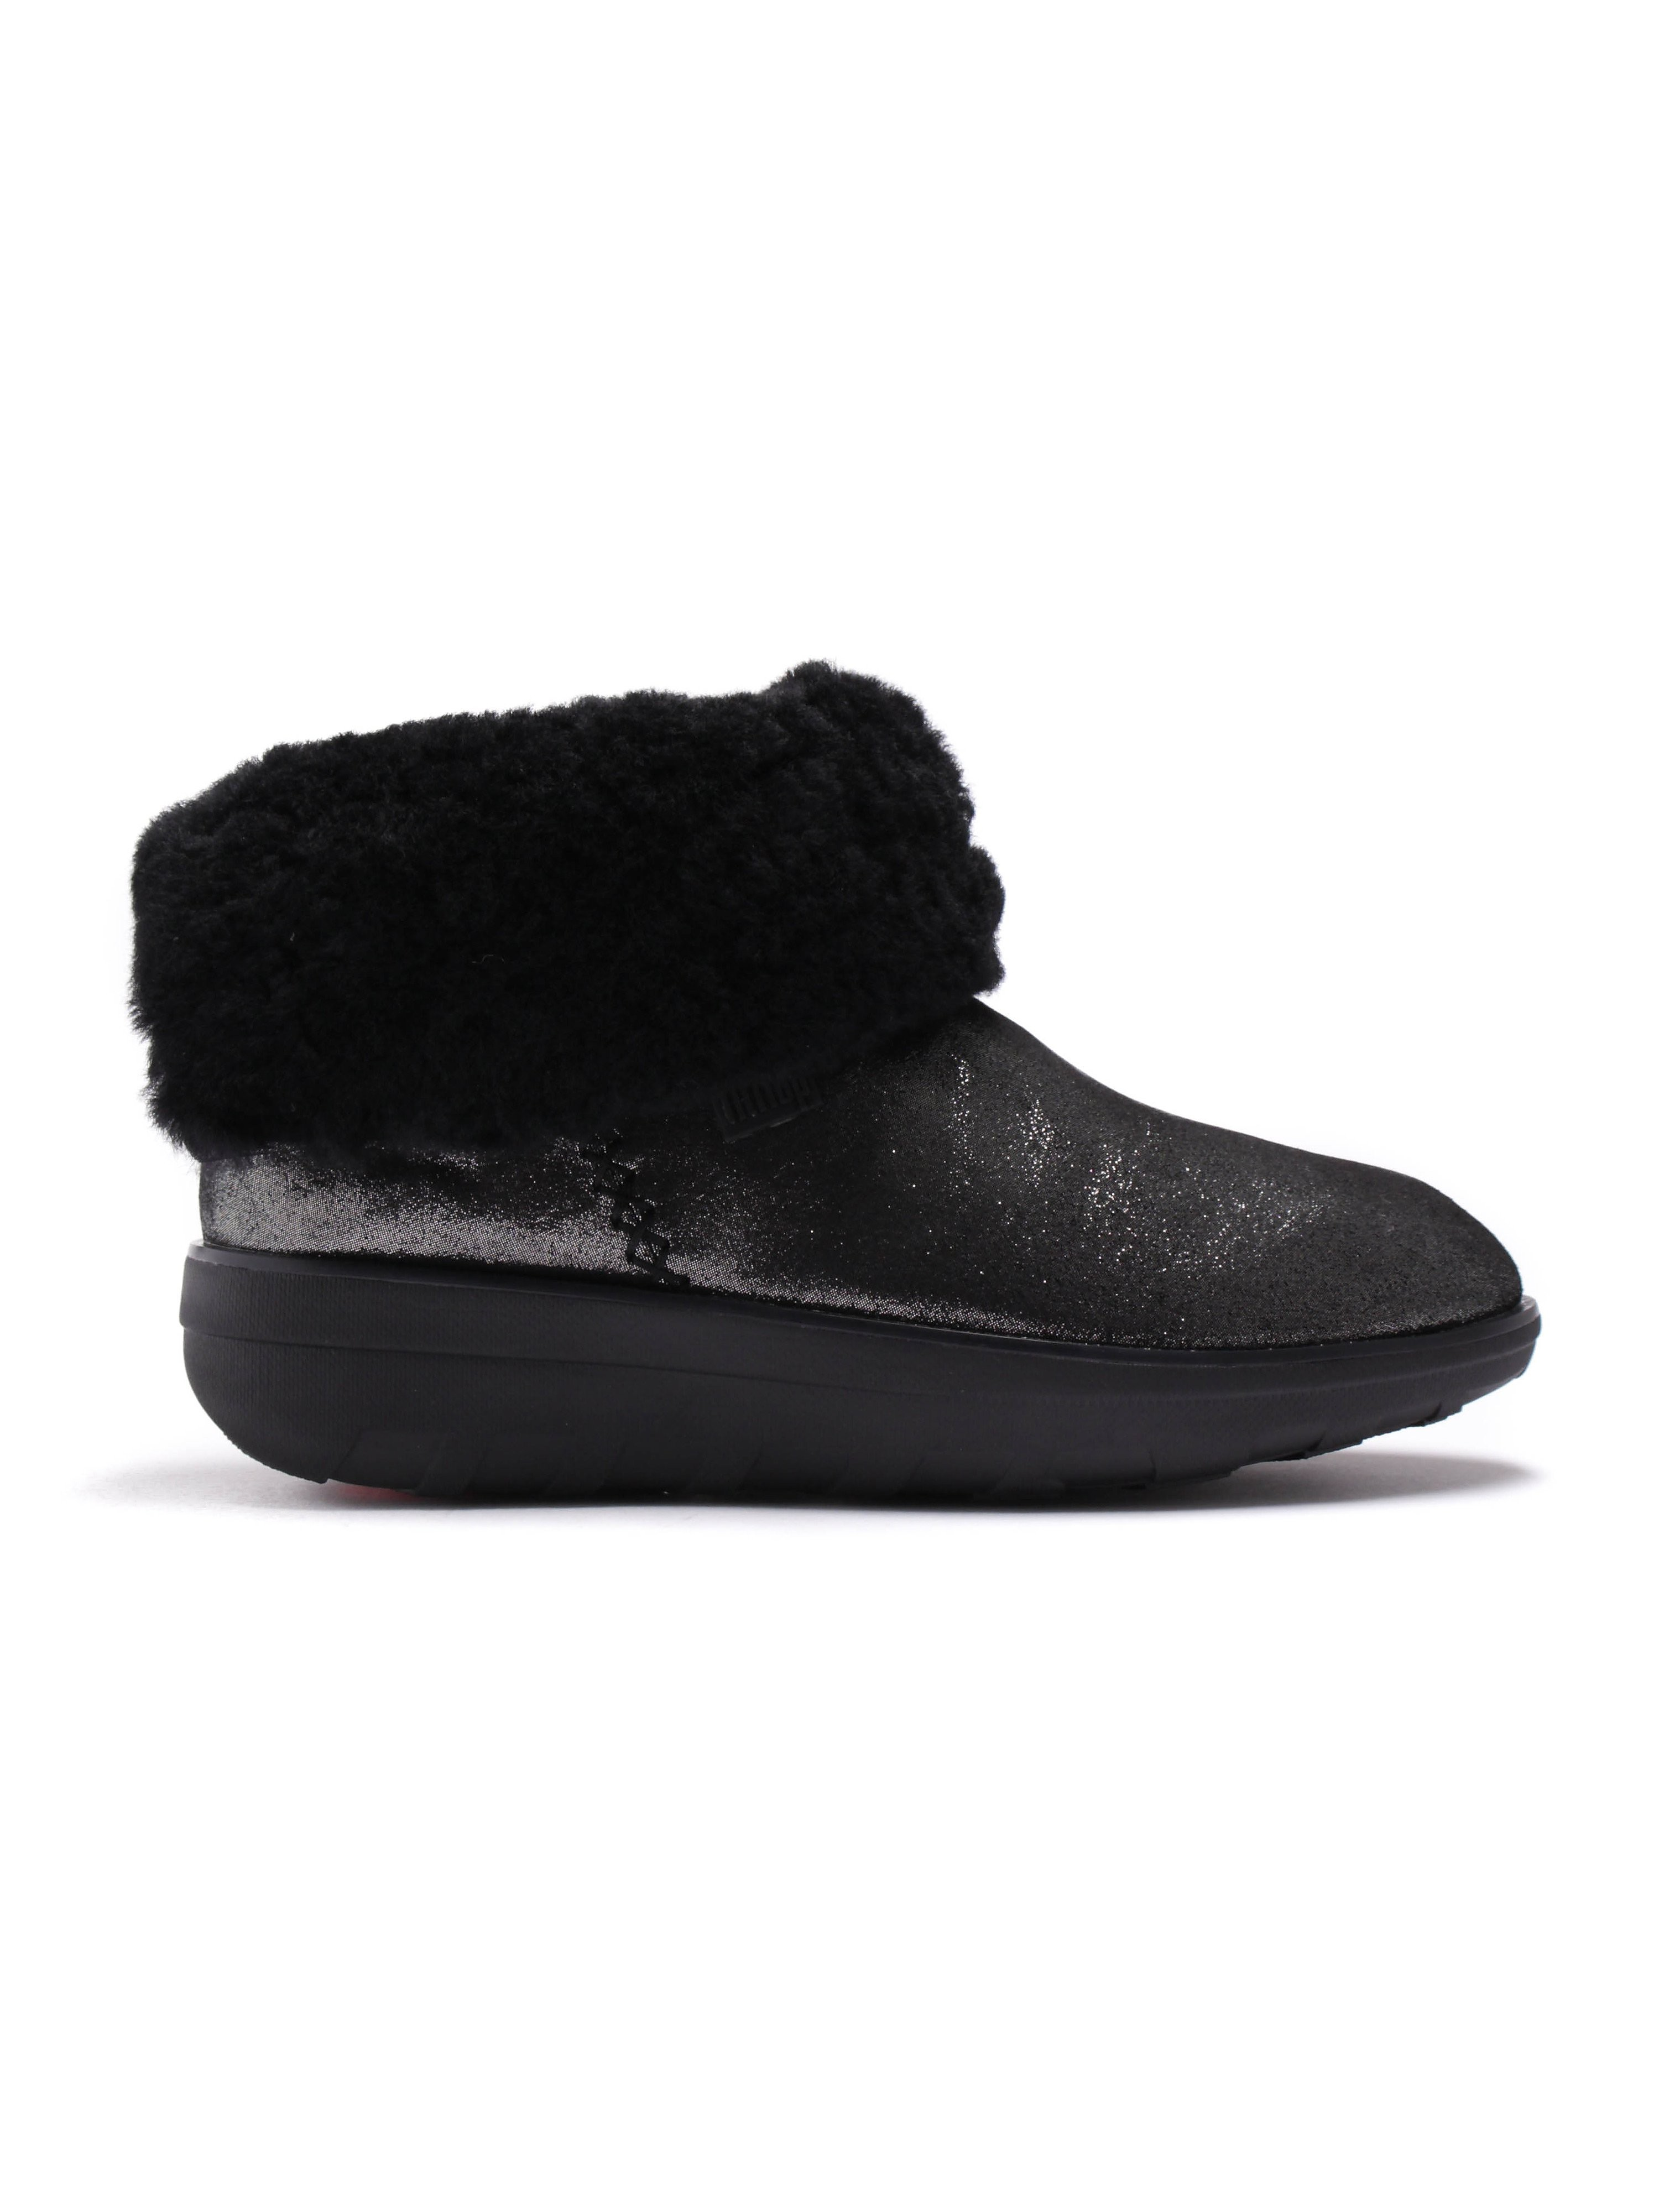 FitFlop Womens Supercush Mukloaff Shimmer Boot - Black